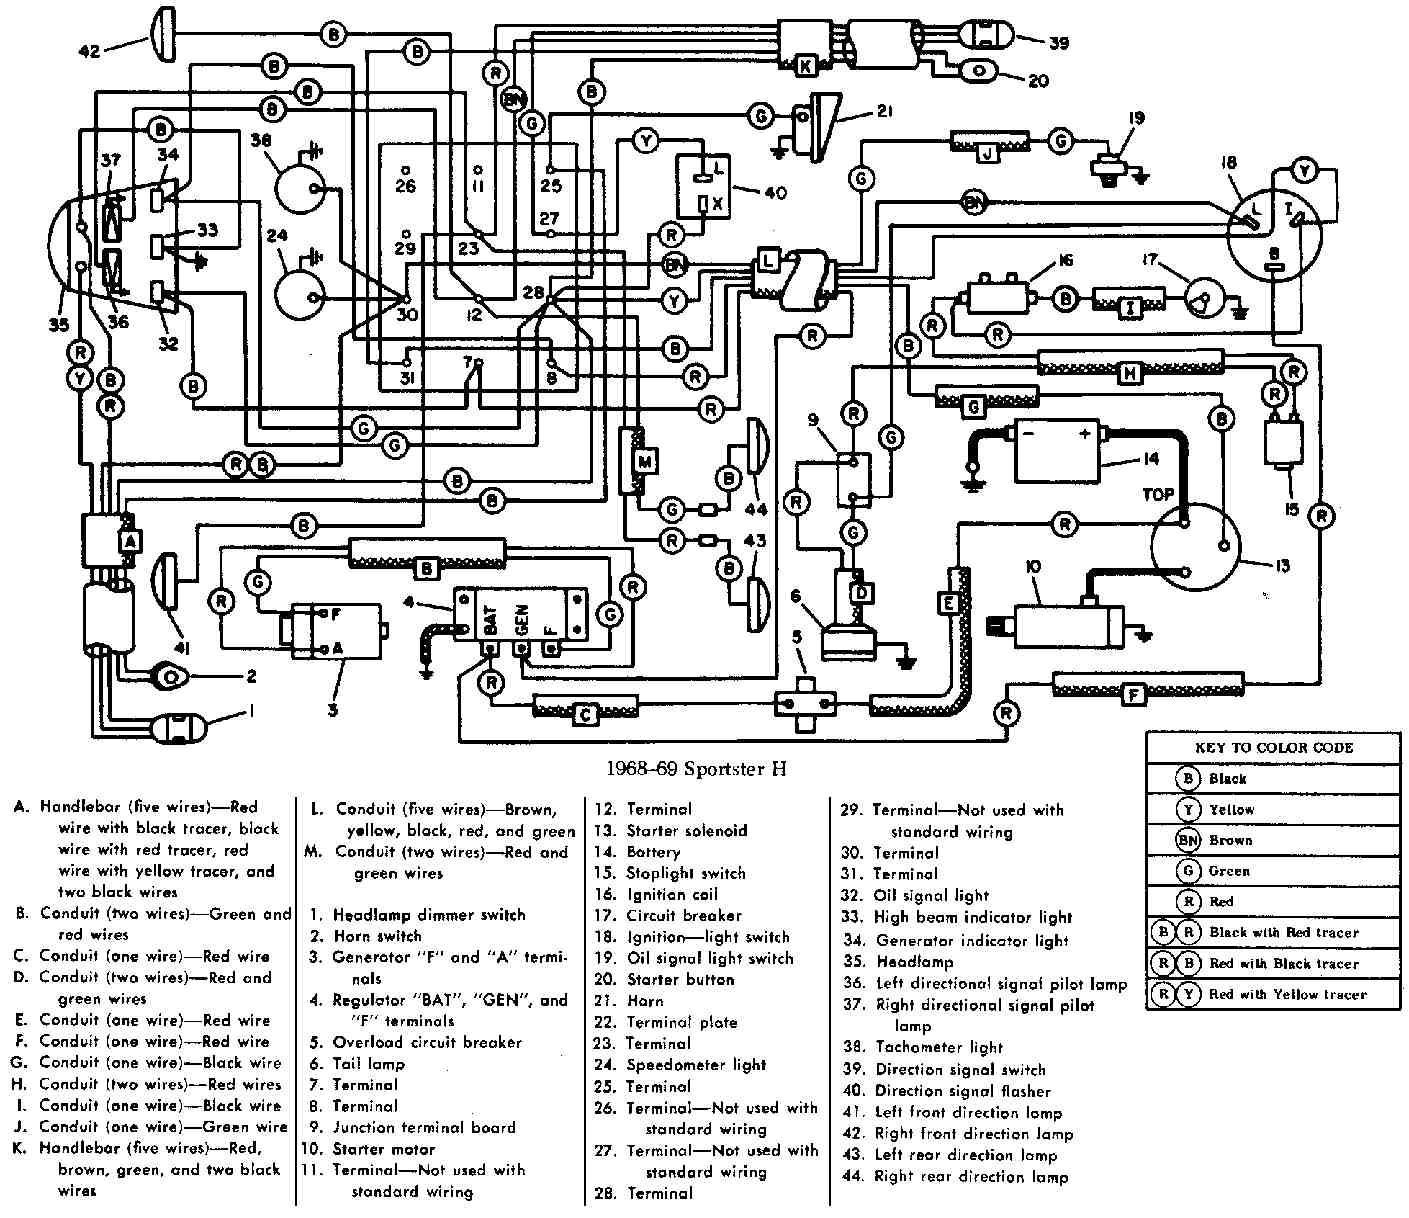 The Following Wiring Schematic Is Electrical Diagram Of 1968 1969 Harley Davidson Sportster Description From Carwiringdiagram